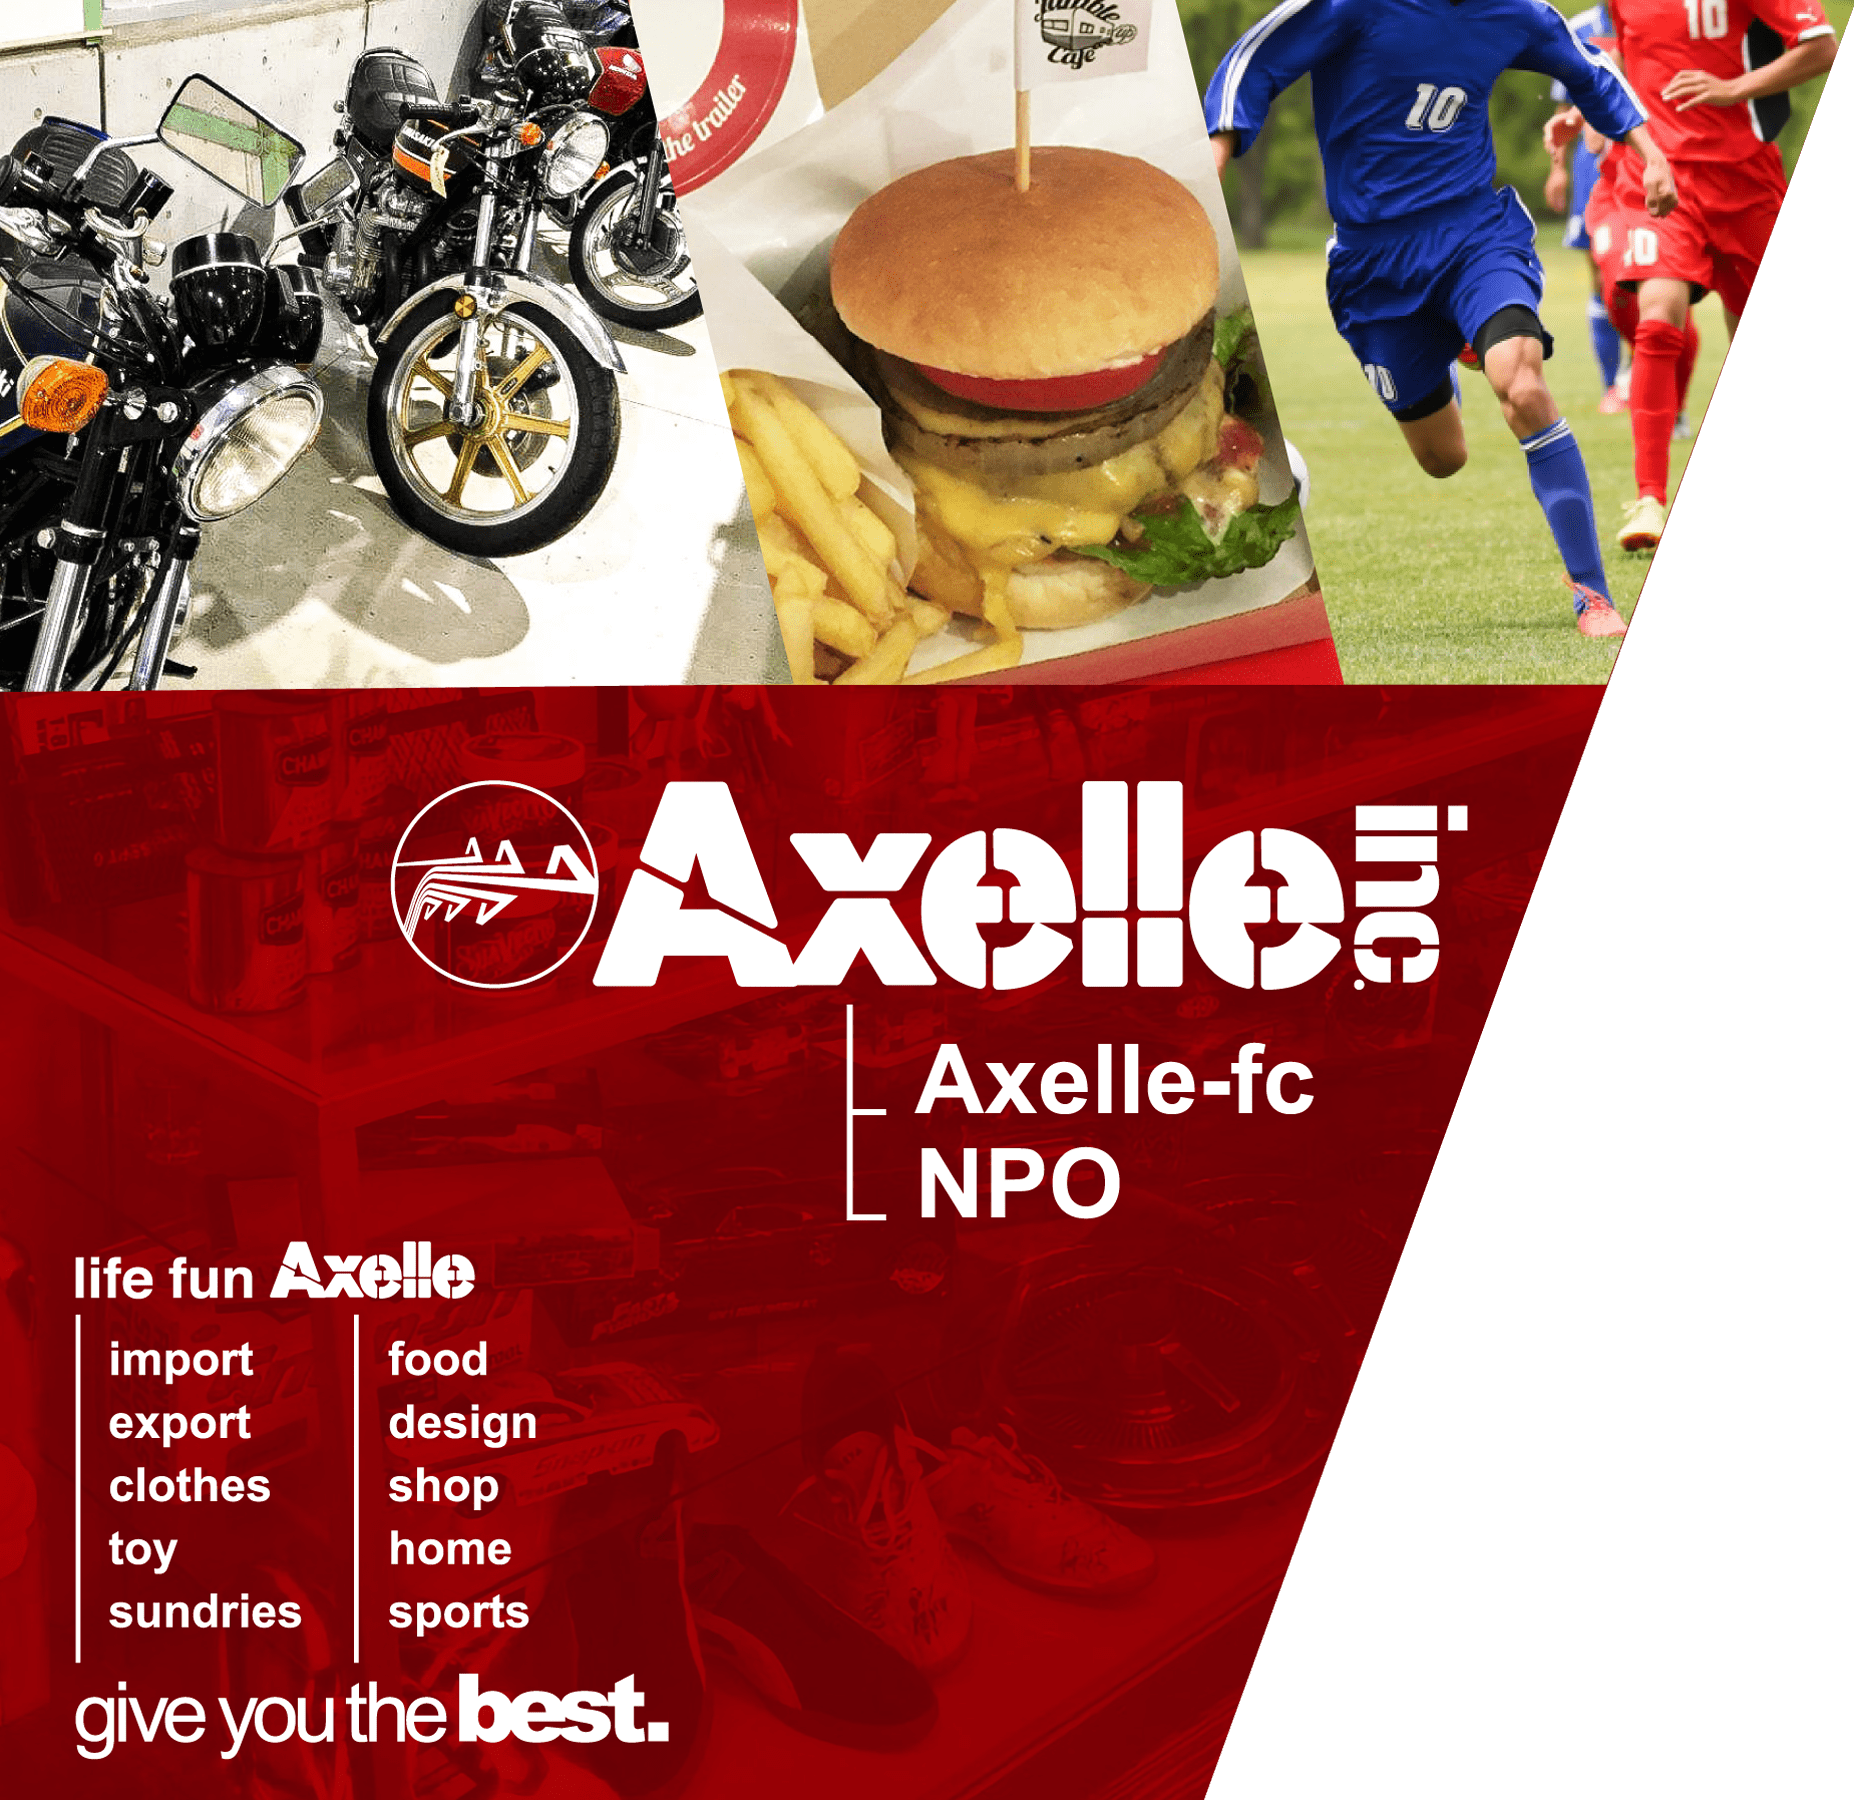 Axelle inc. Axelle-fc NPO life fun Axelle import export clothes toy sundries food design shop home sports give you the best.